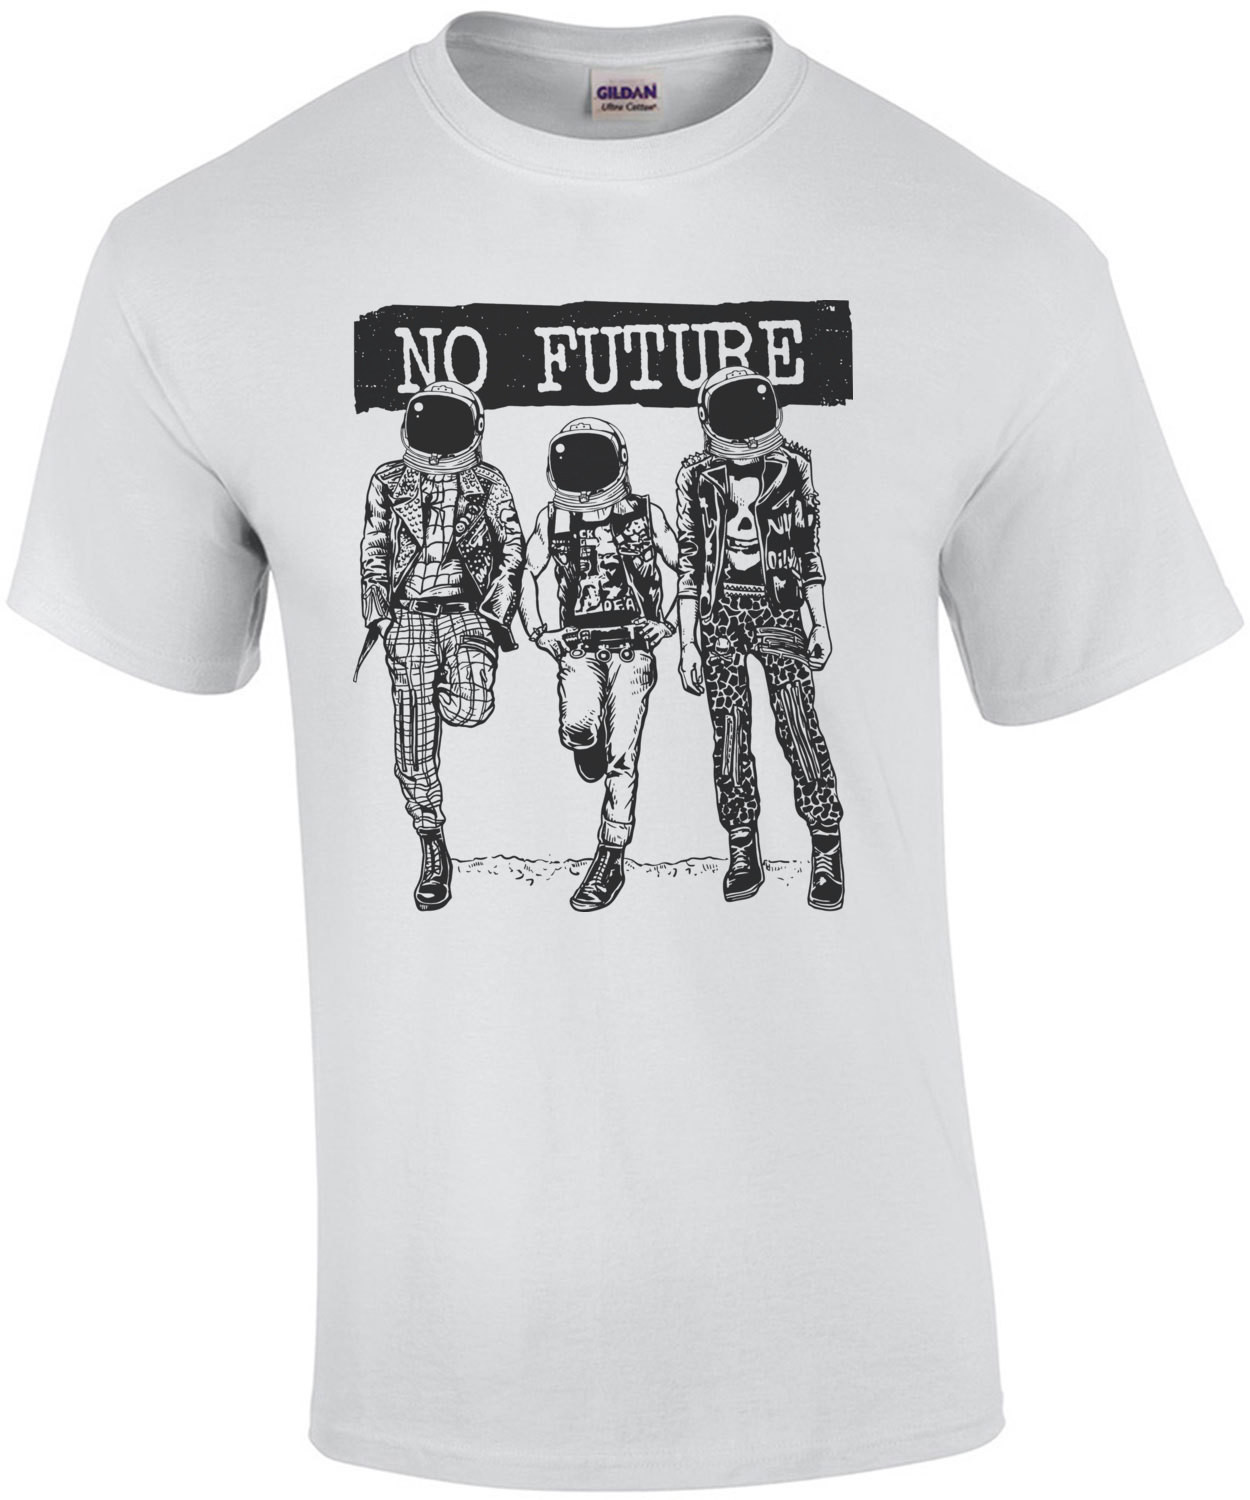 No Future Anarchy T-Shirt